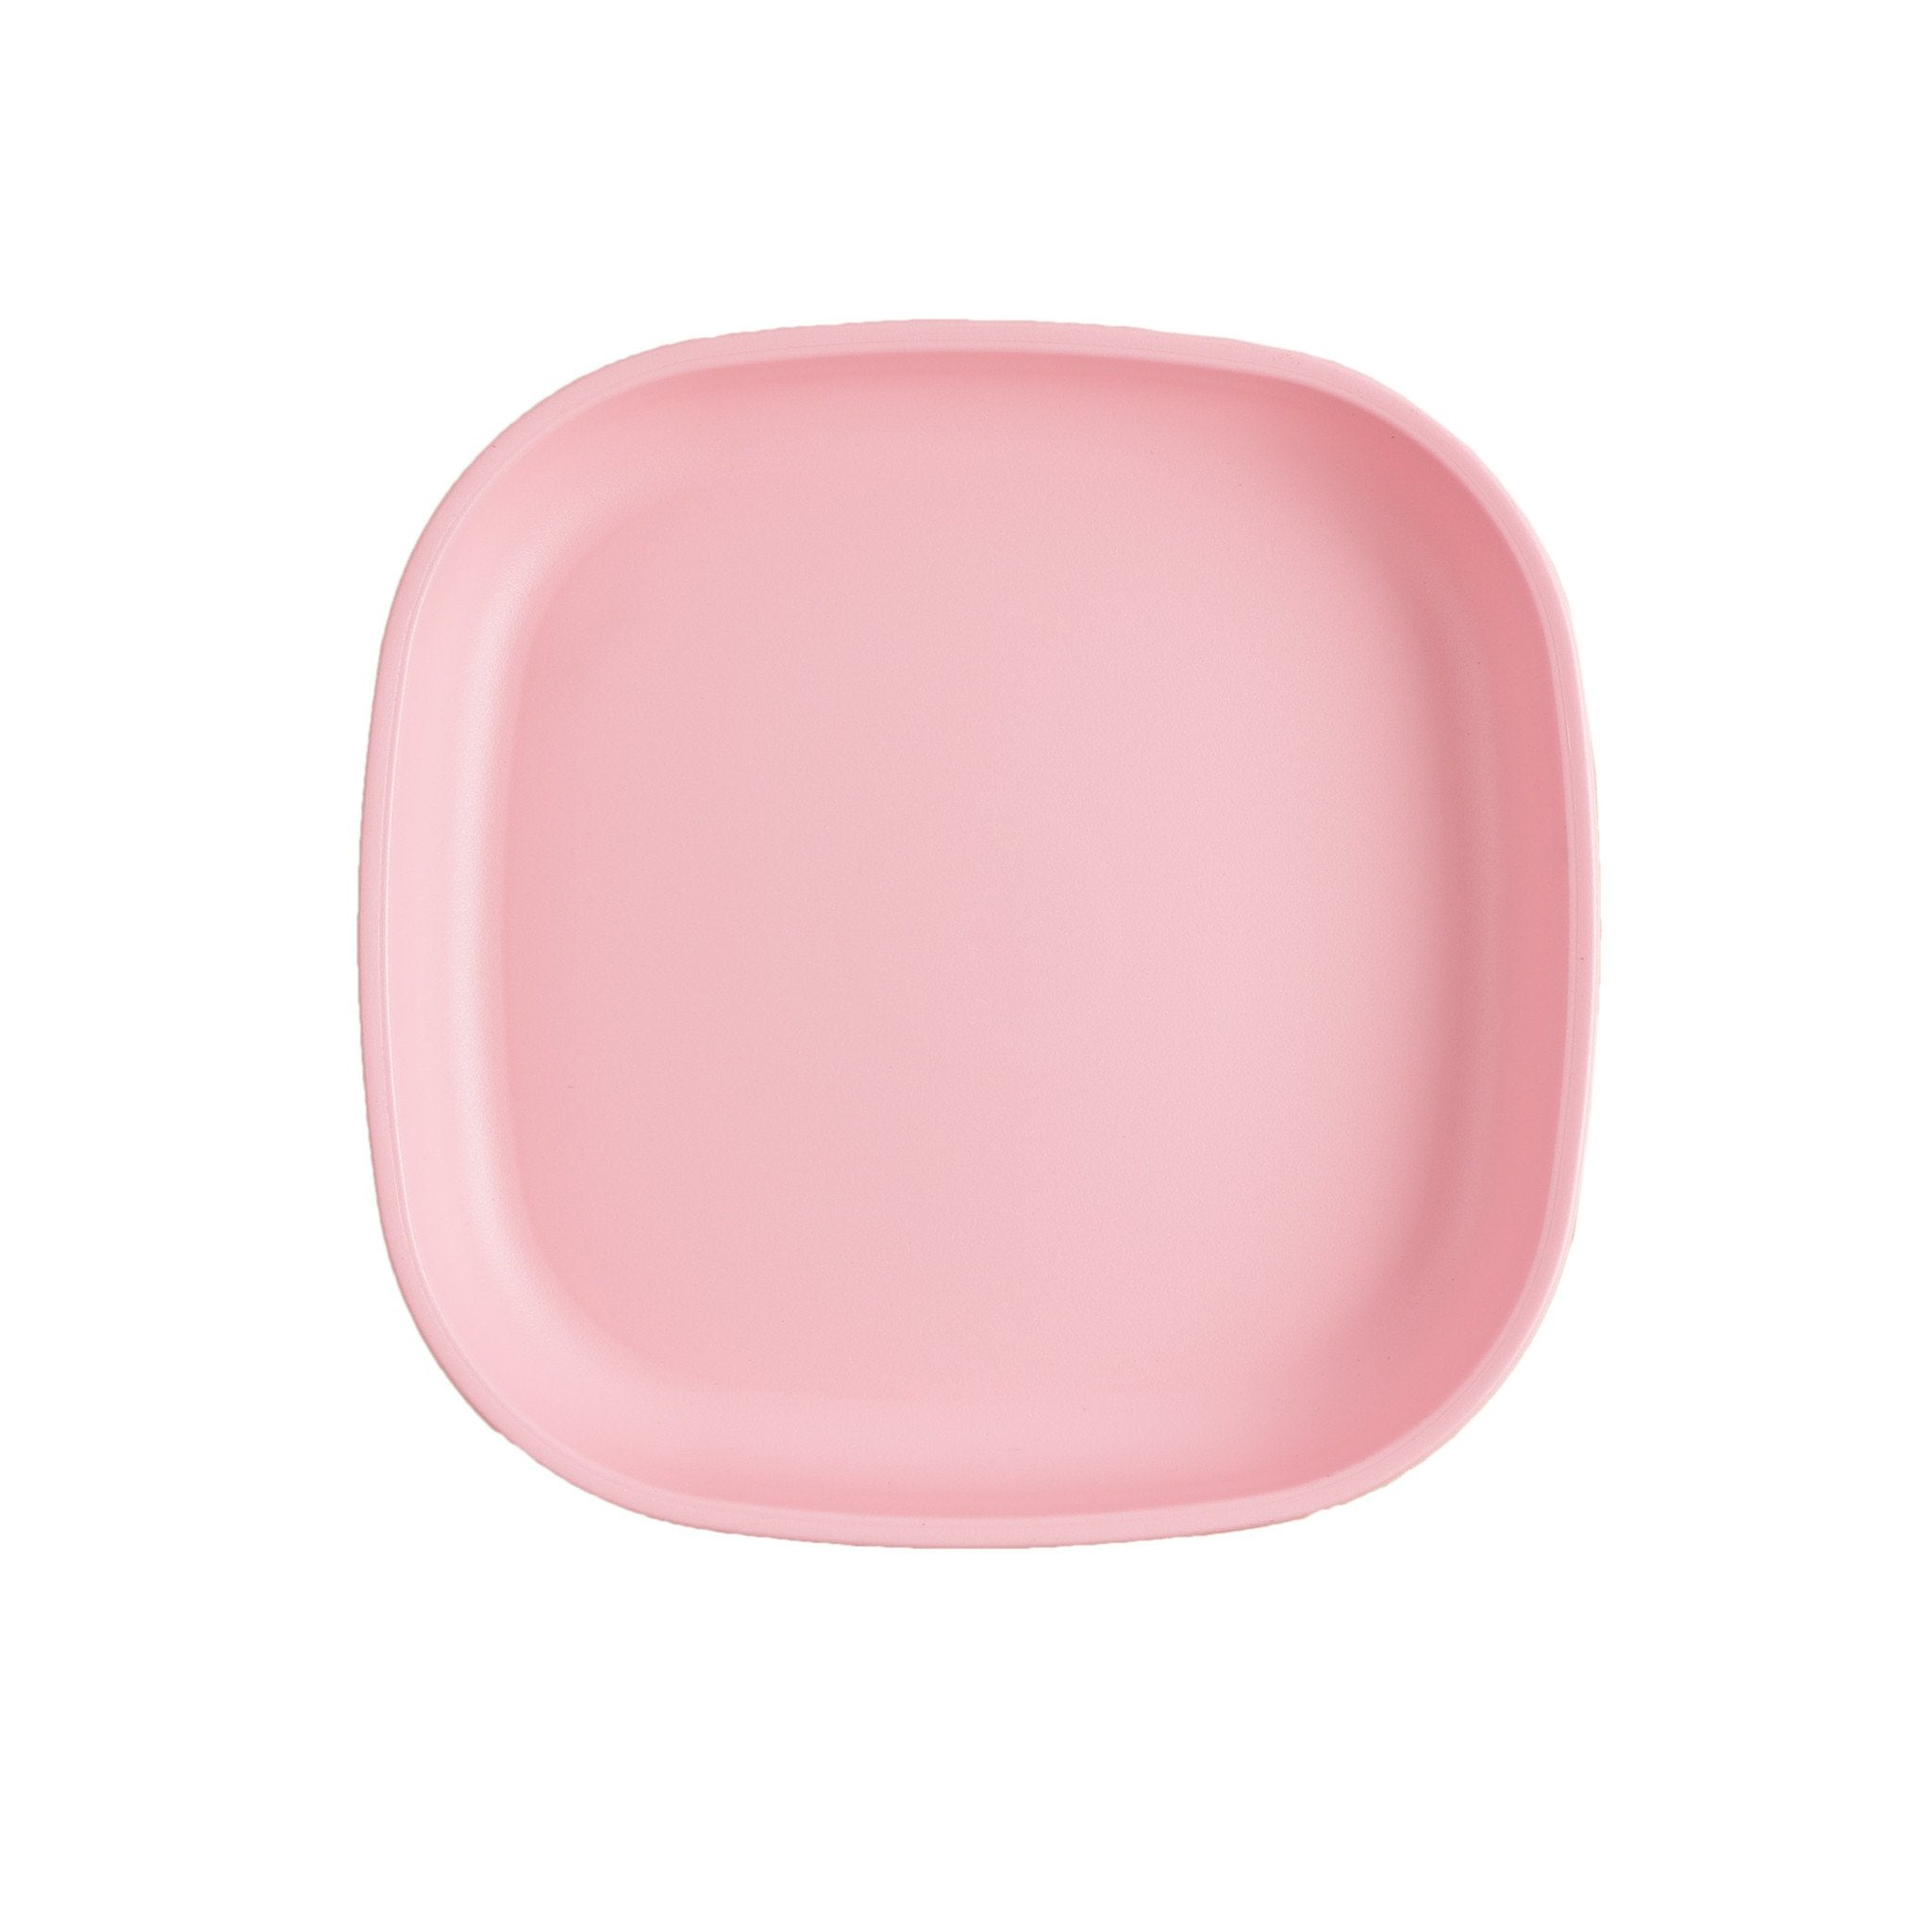 Replay Large Plate Replay Dinnerware Baby Pink at Little Earth Nest Eco Shop